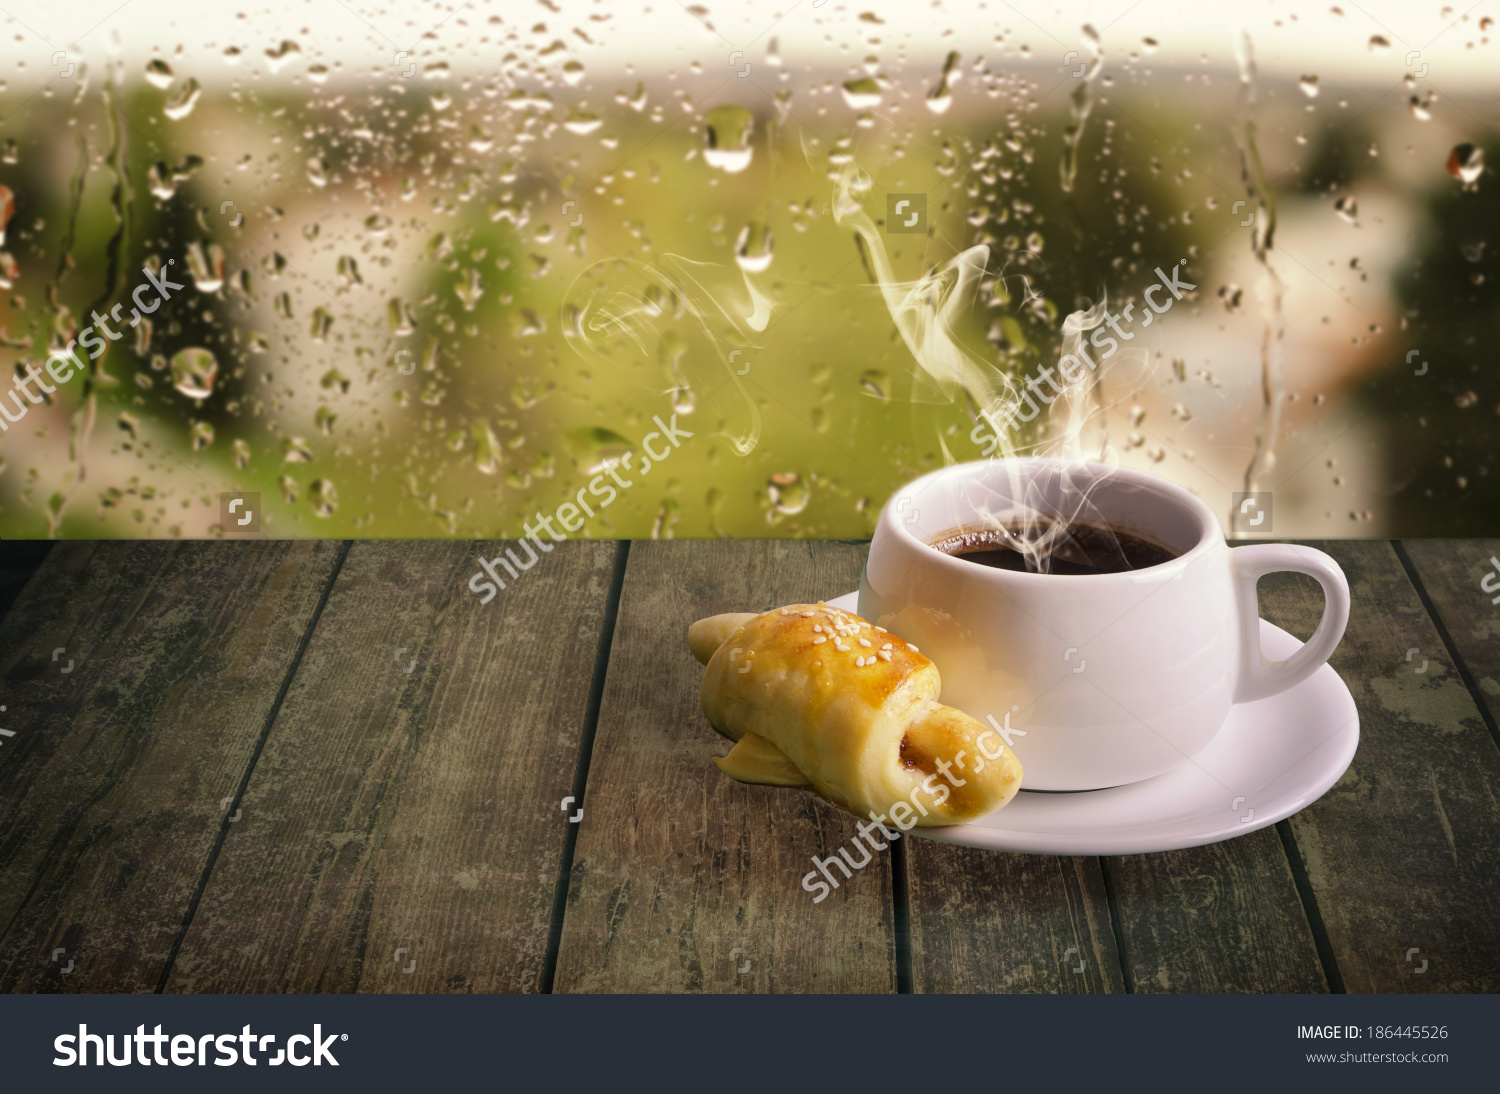 Steaming Coffee Cup On Rainy Day Stock Photo 186445526.